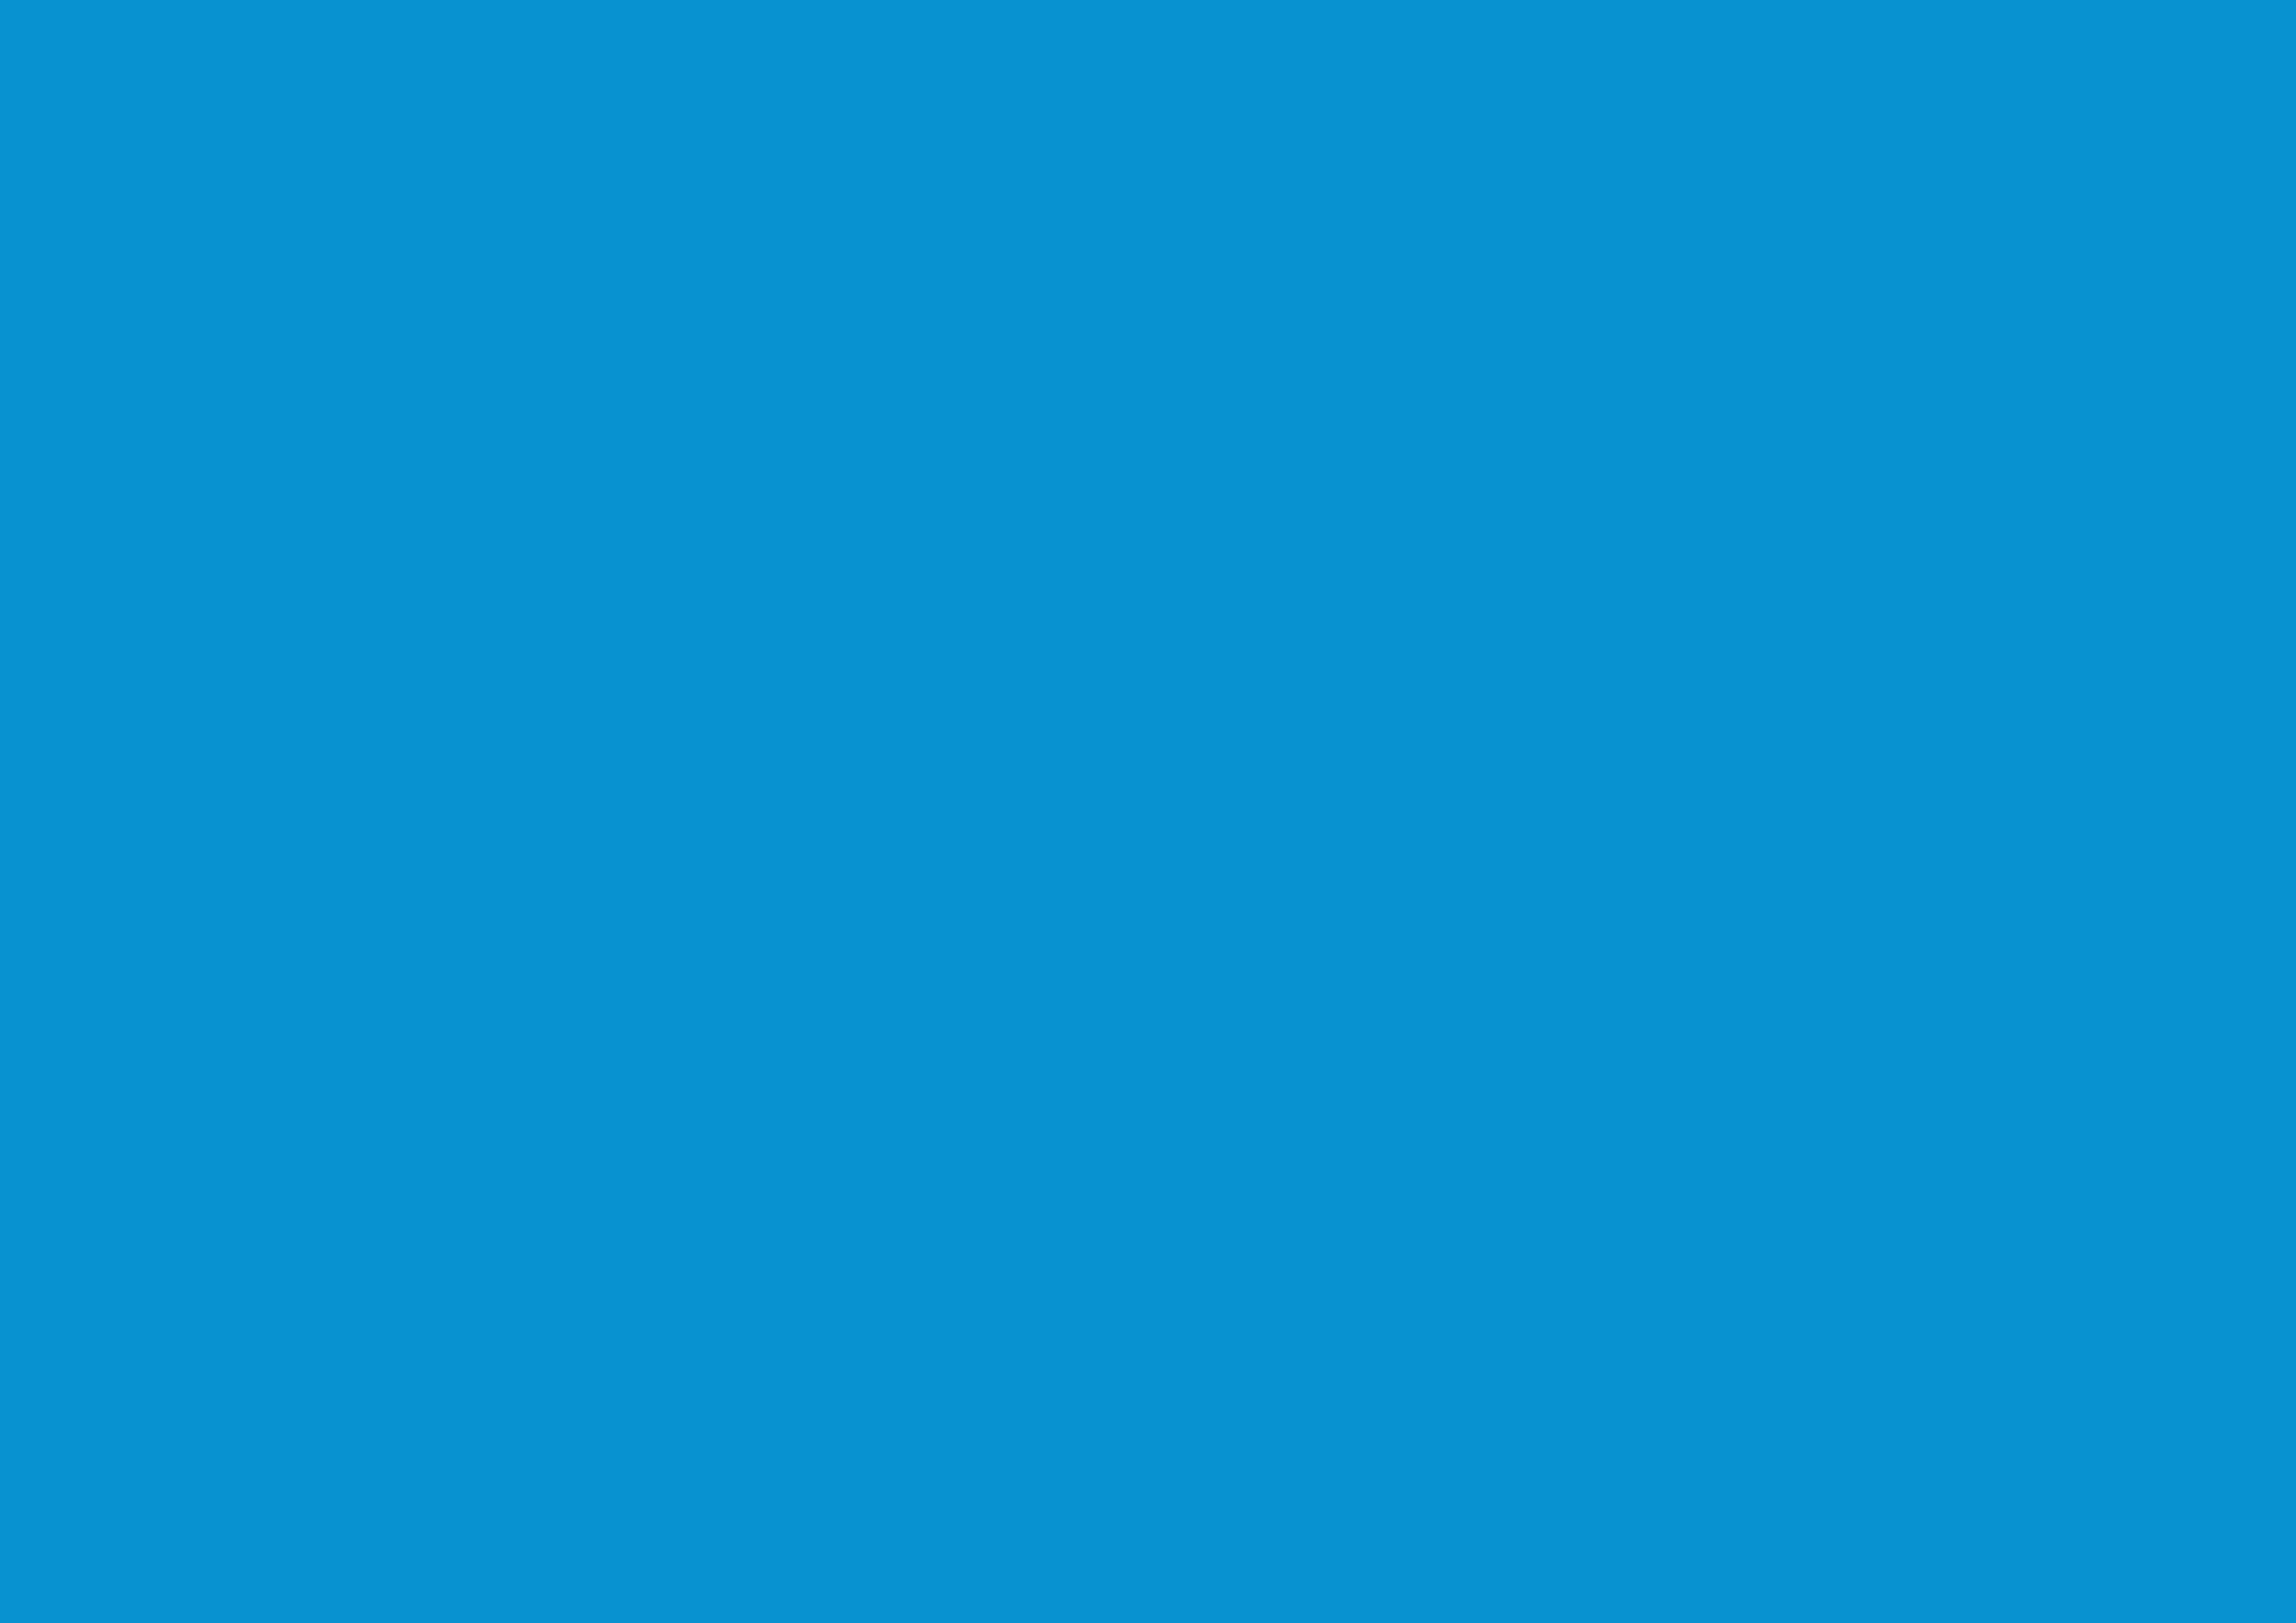 3508x2480 Rich Electric Blue Solid Color Background